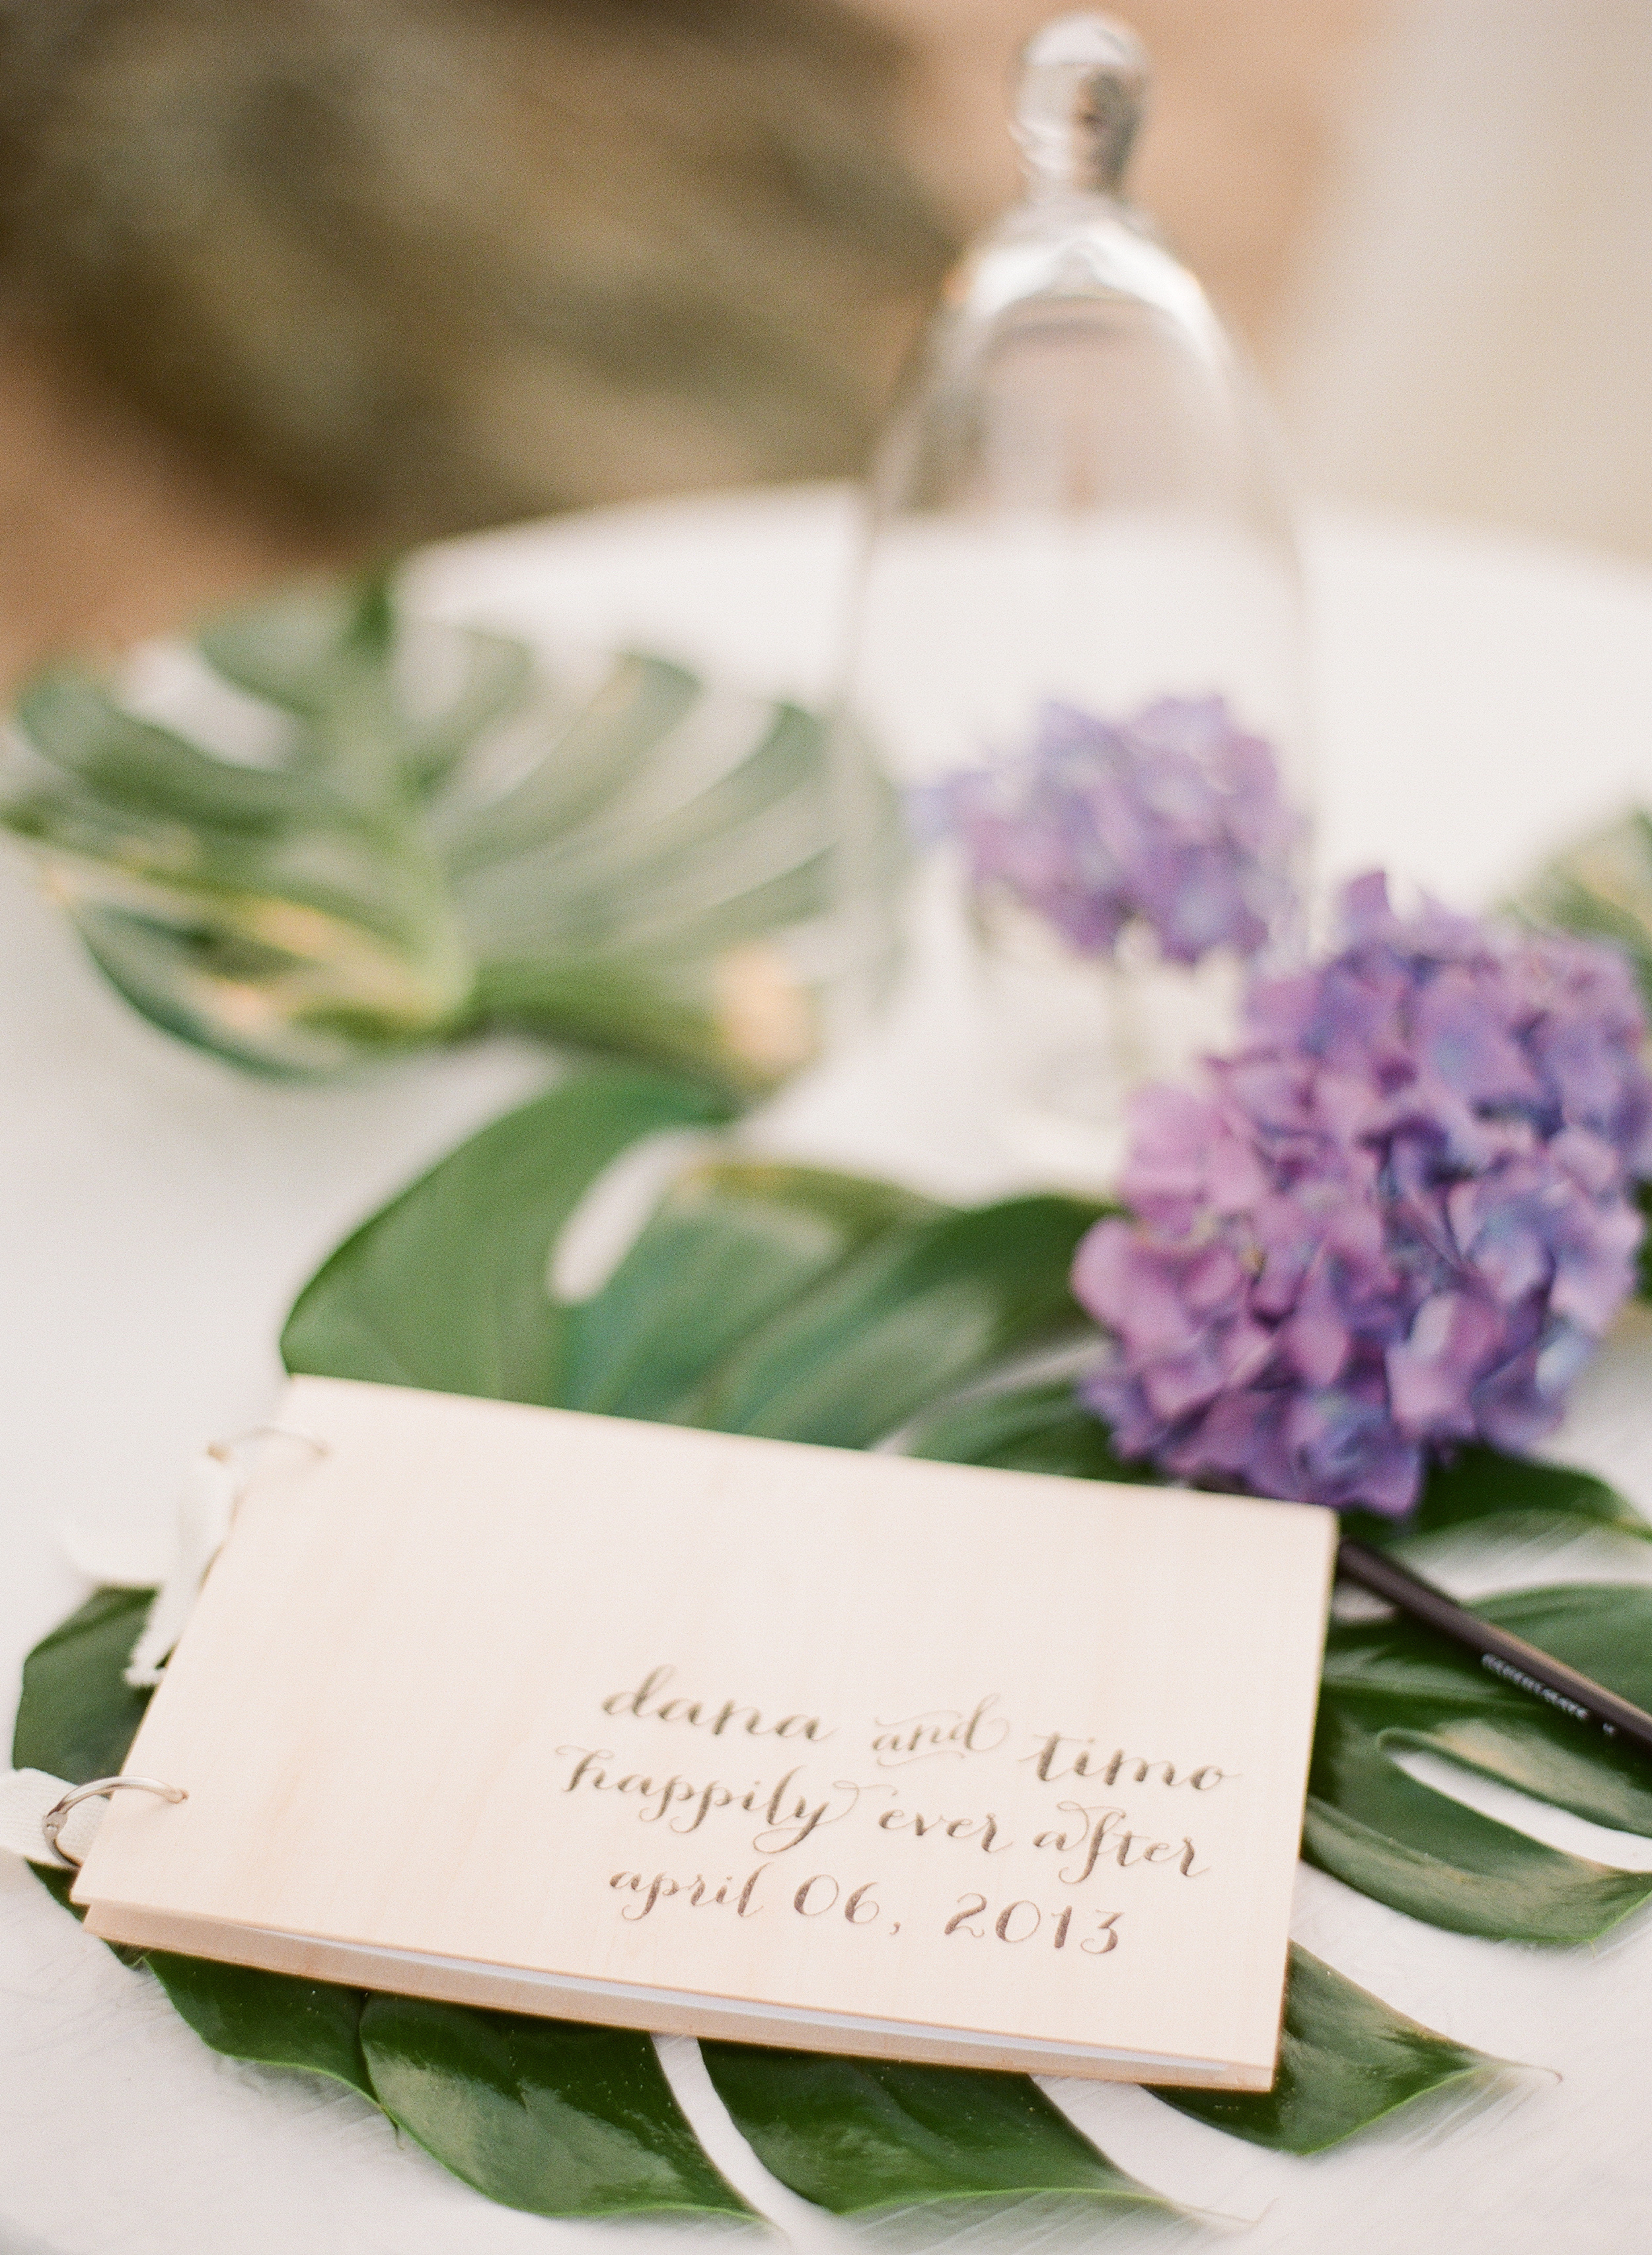 a handmade and hand-lettered wooden guestbook is pictured here at this wedding that Destination Wedding Photographer, Lexia Frank, photographed at the W hotel in Vieques Island Puerto Rico. Lexia is a film photographer specializing in destiantion weddings and luxury weddings worldwide.